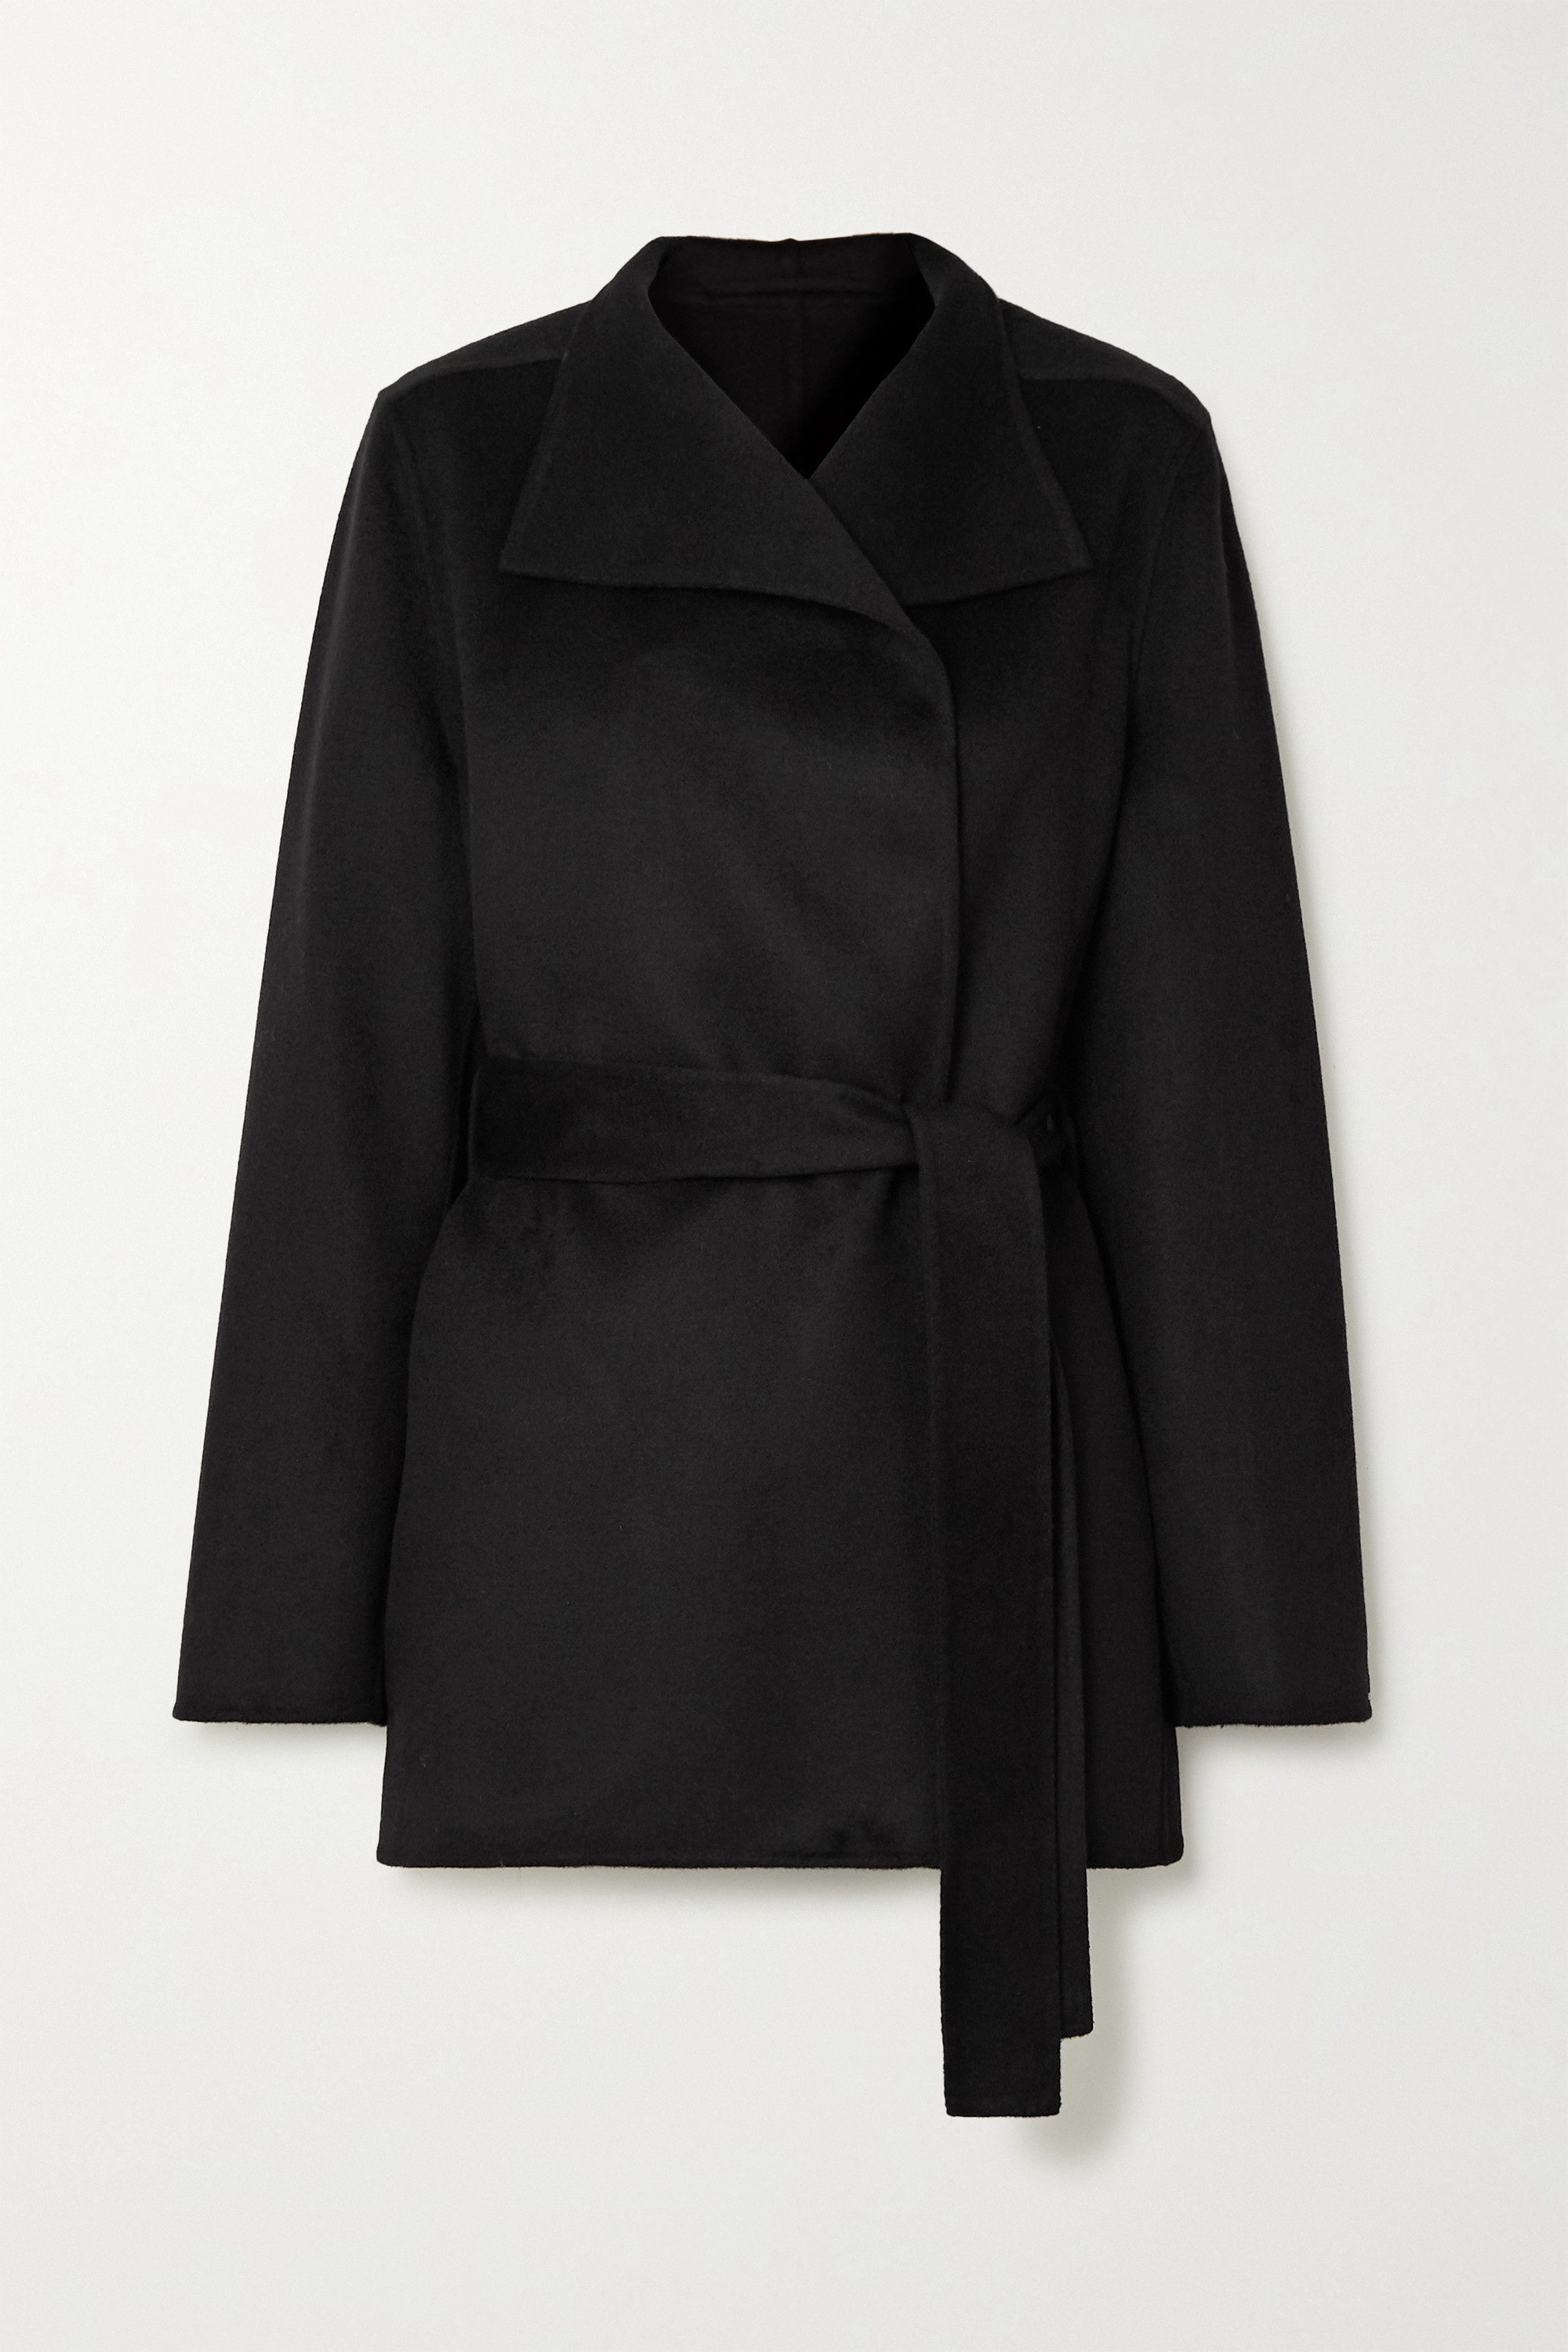 Lima belted wool and cashmere-blend coat